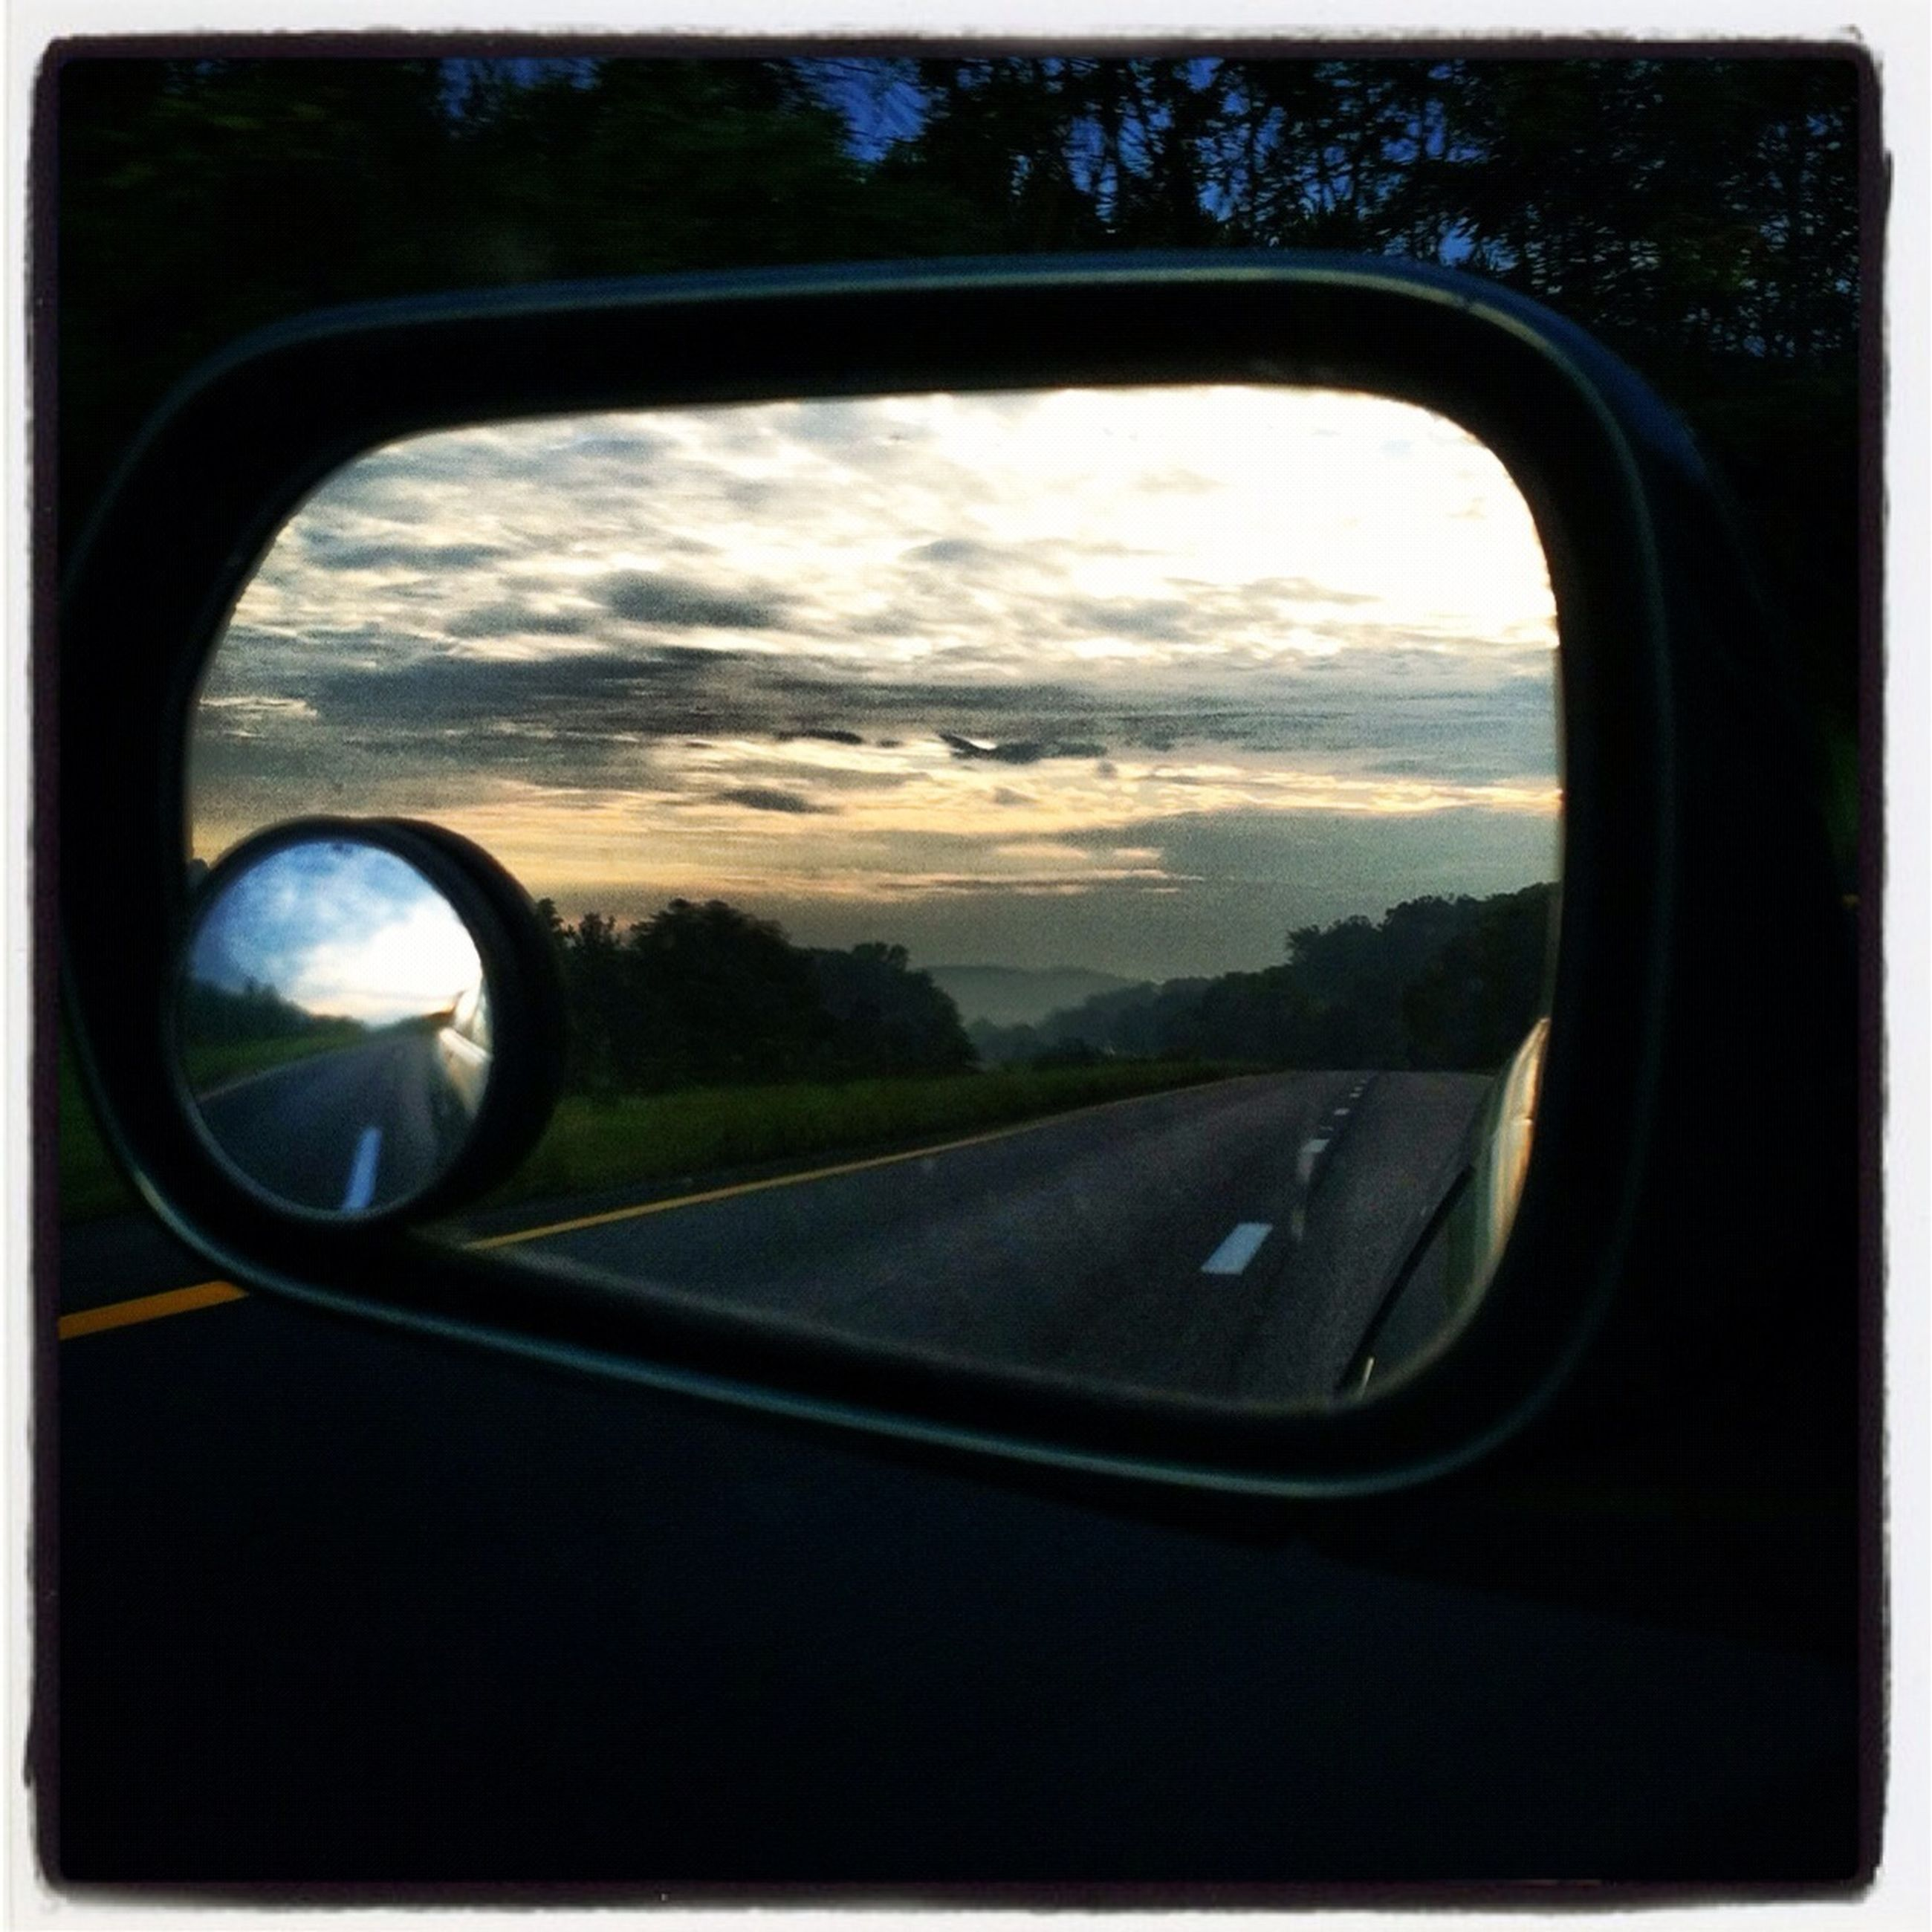 transportation, side-view mirror, sky, land vehicle, road, mode of transport, car, reflection, cloud - sky, circle, landscape, transparent, glass - material, close-up, cloud, street, part of, nature, tree, no people